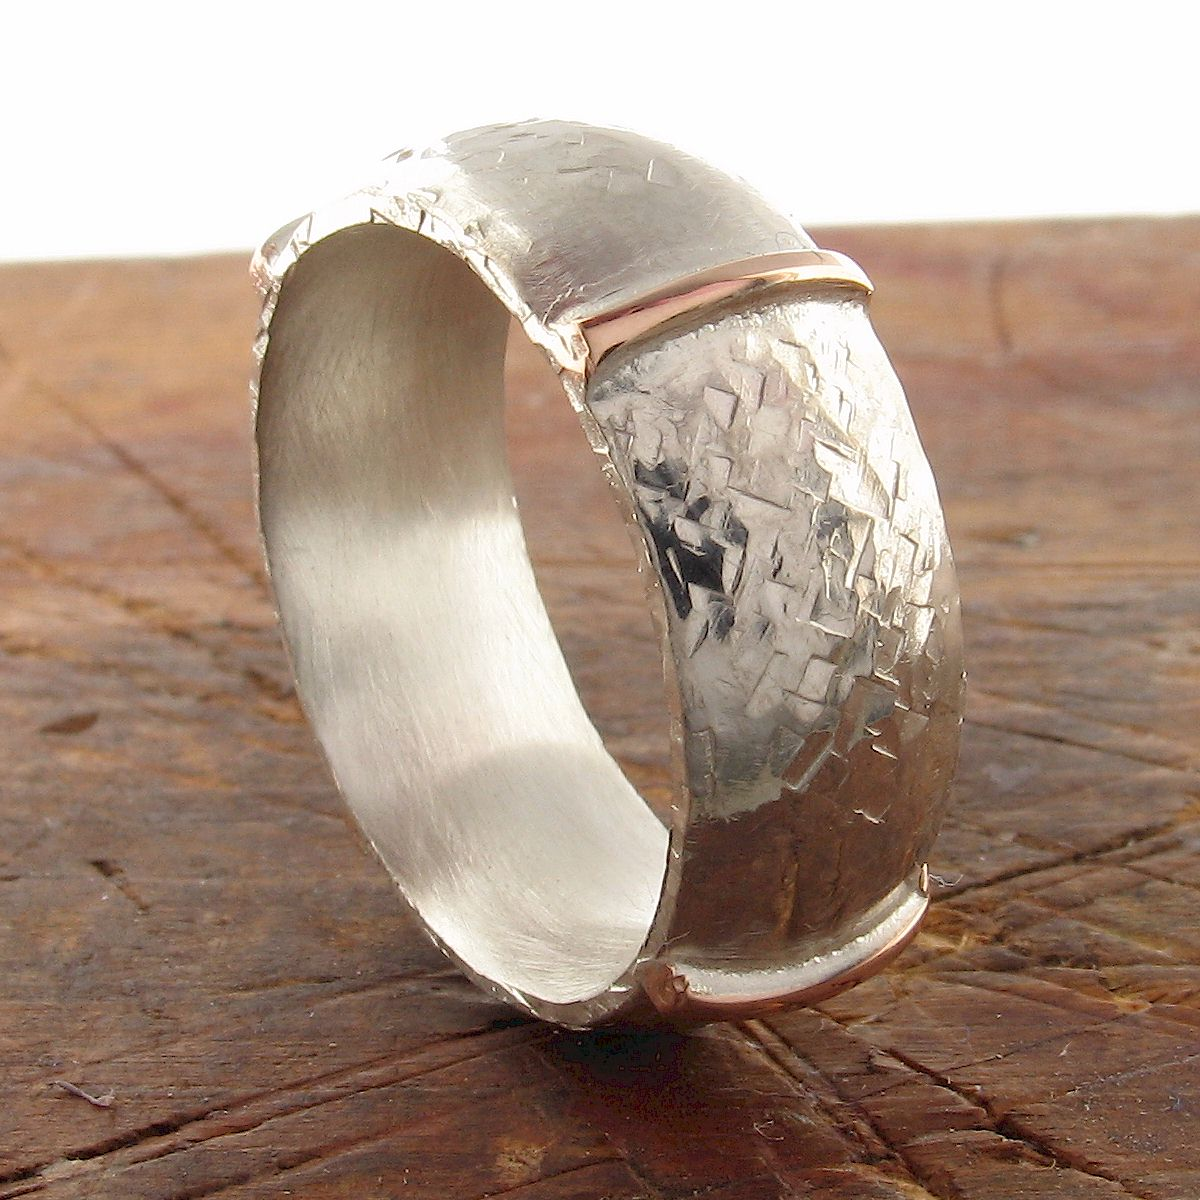 Honister 8mm silver and rose gold white wedding ring.